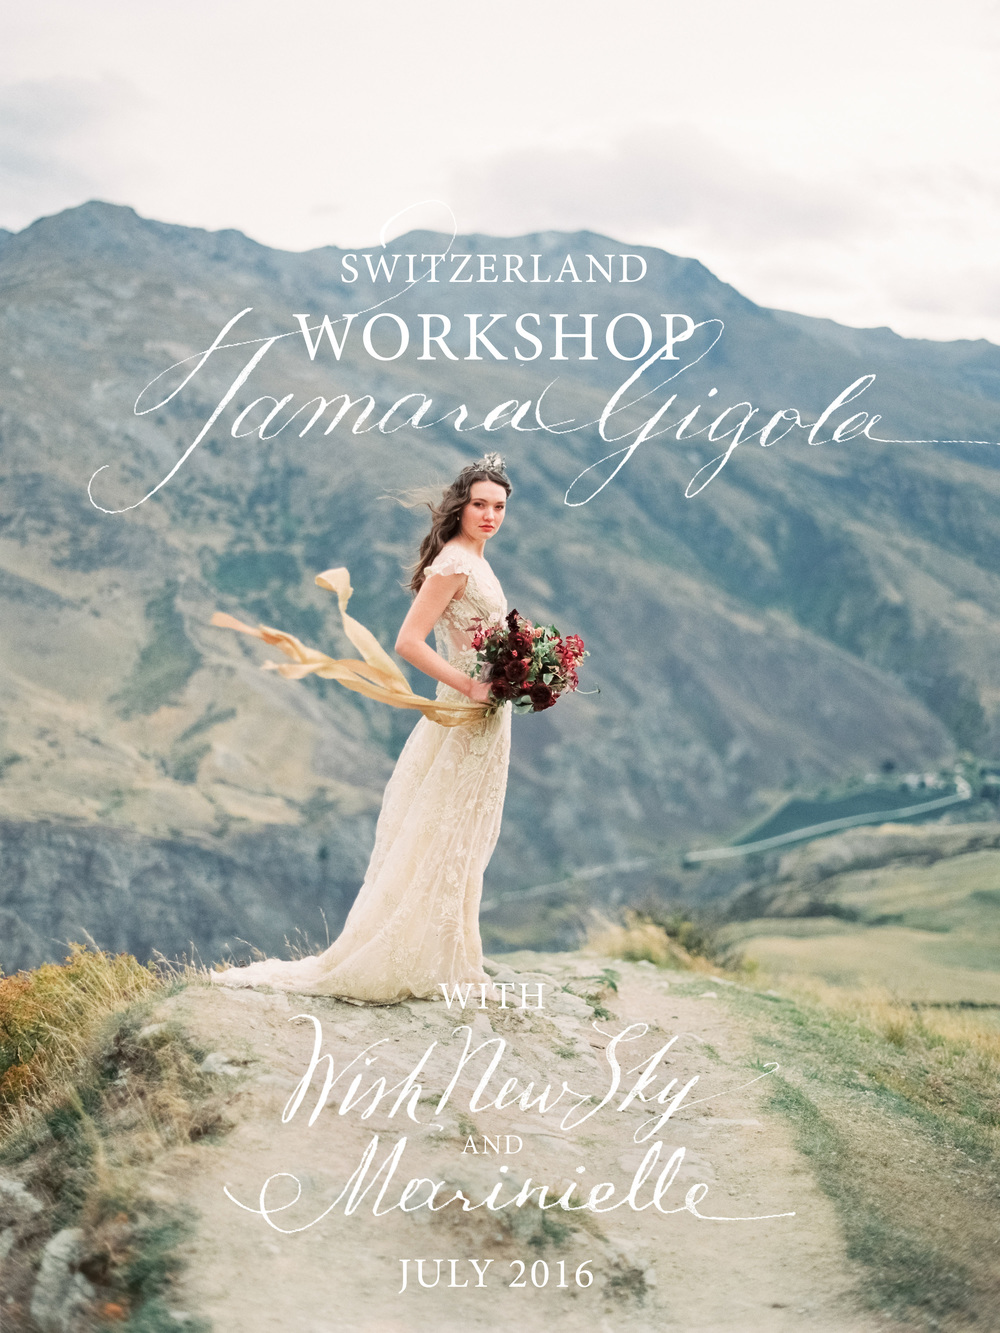 SwitzerlandWorkshop2016